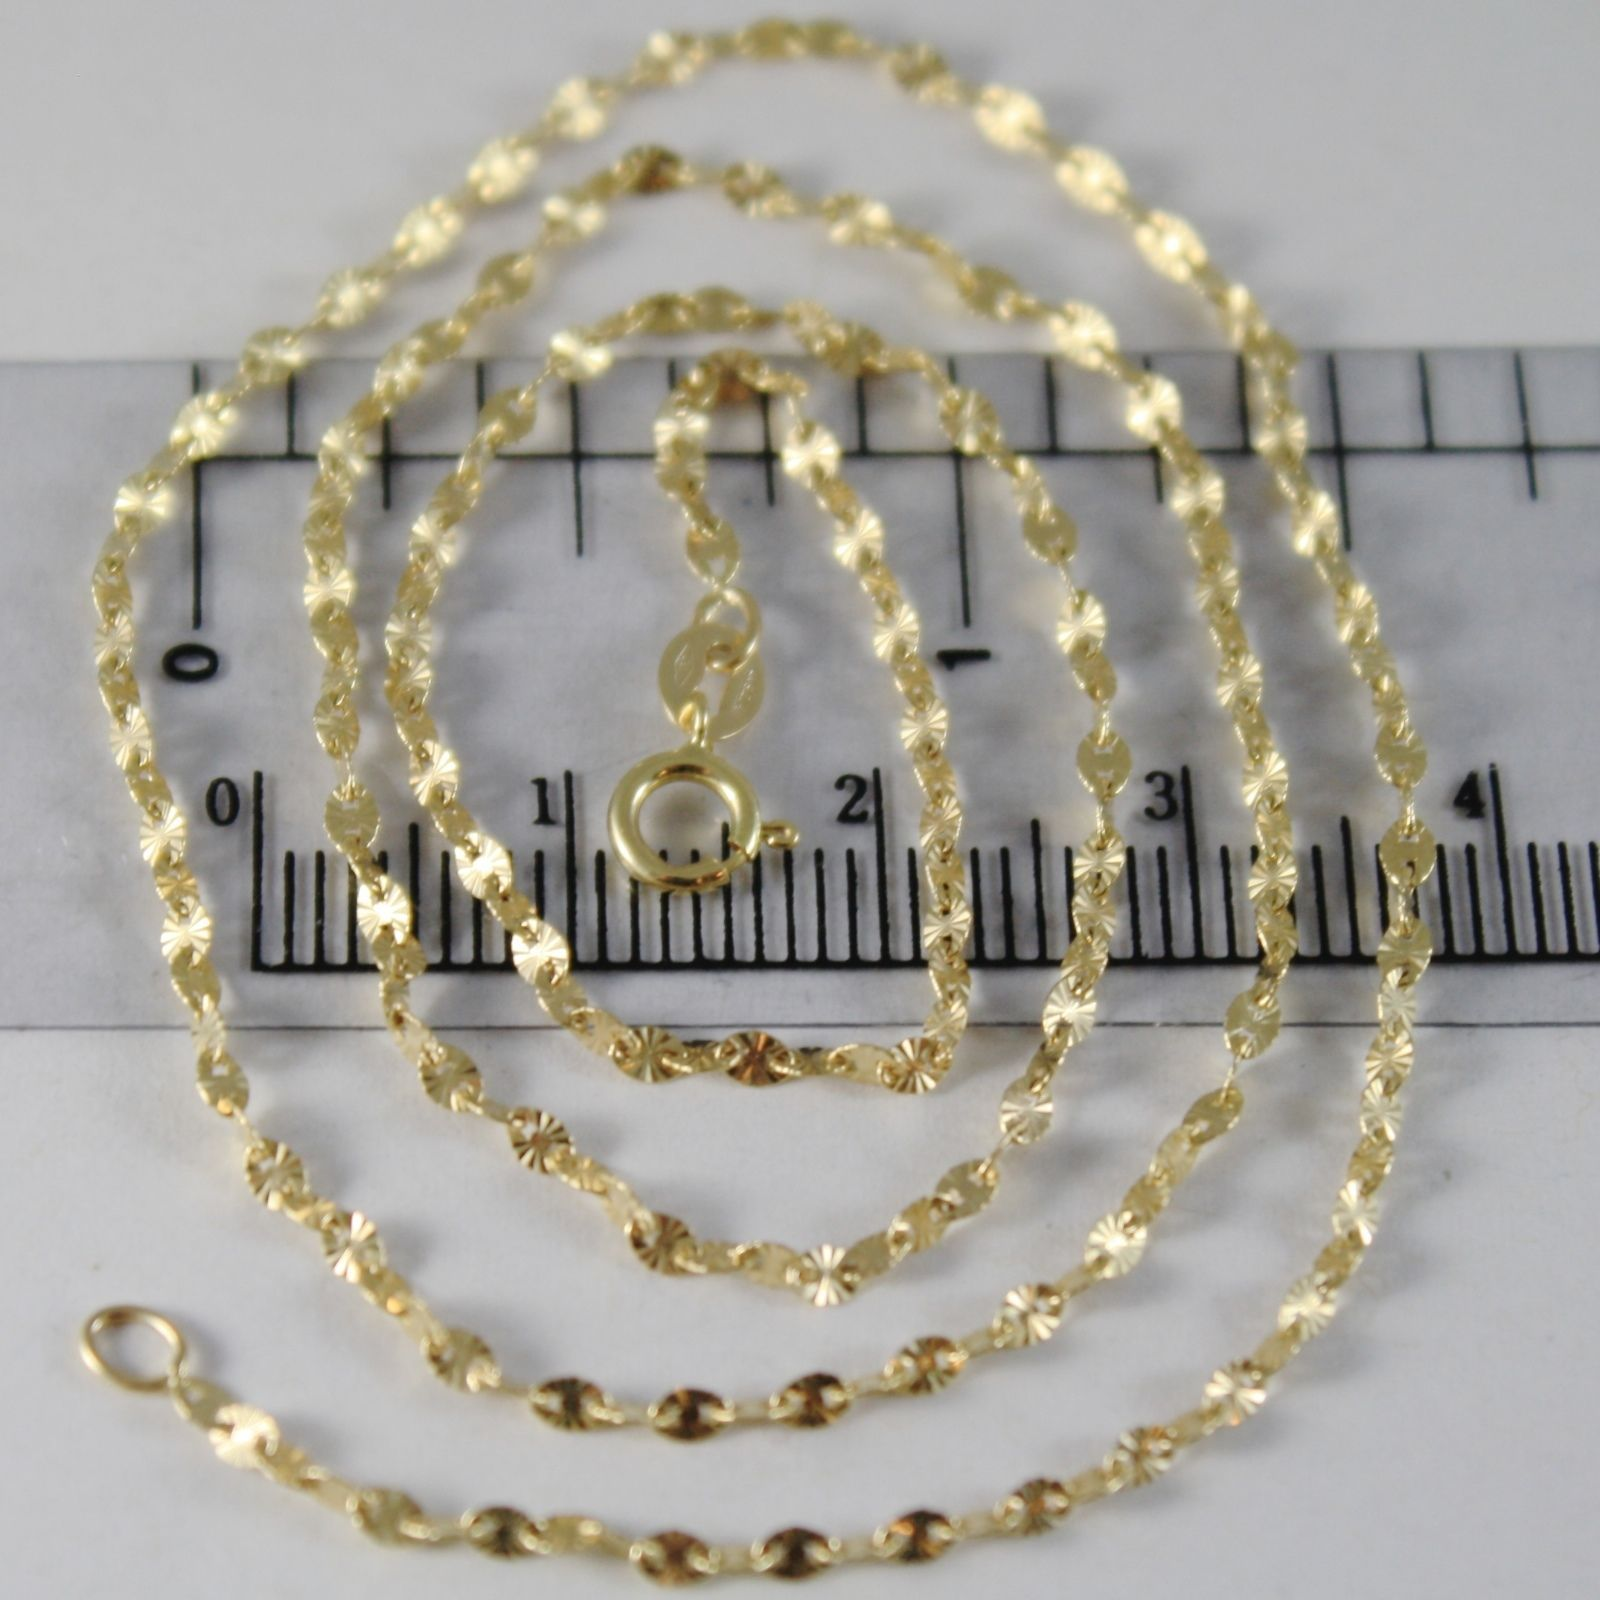 18K YELLOW GOLD CHAIN MINI STAR RAYS OVAL MESH 2 MM, 19.70 INCHES MADE IN ITALY